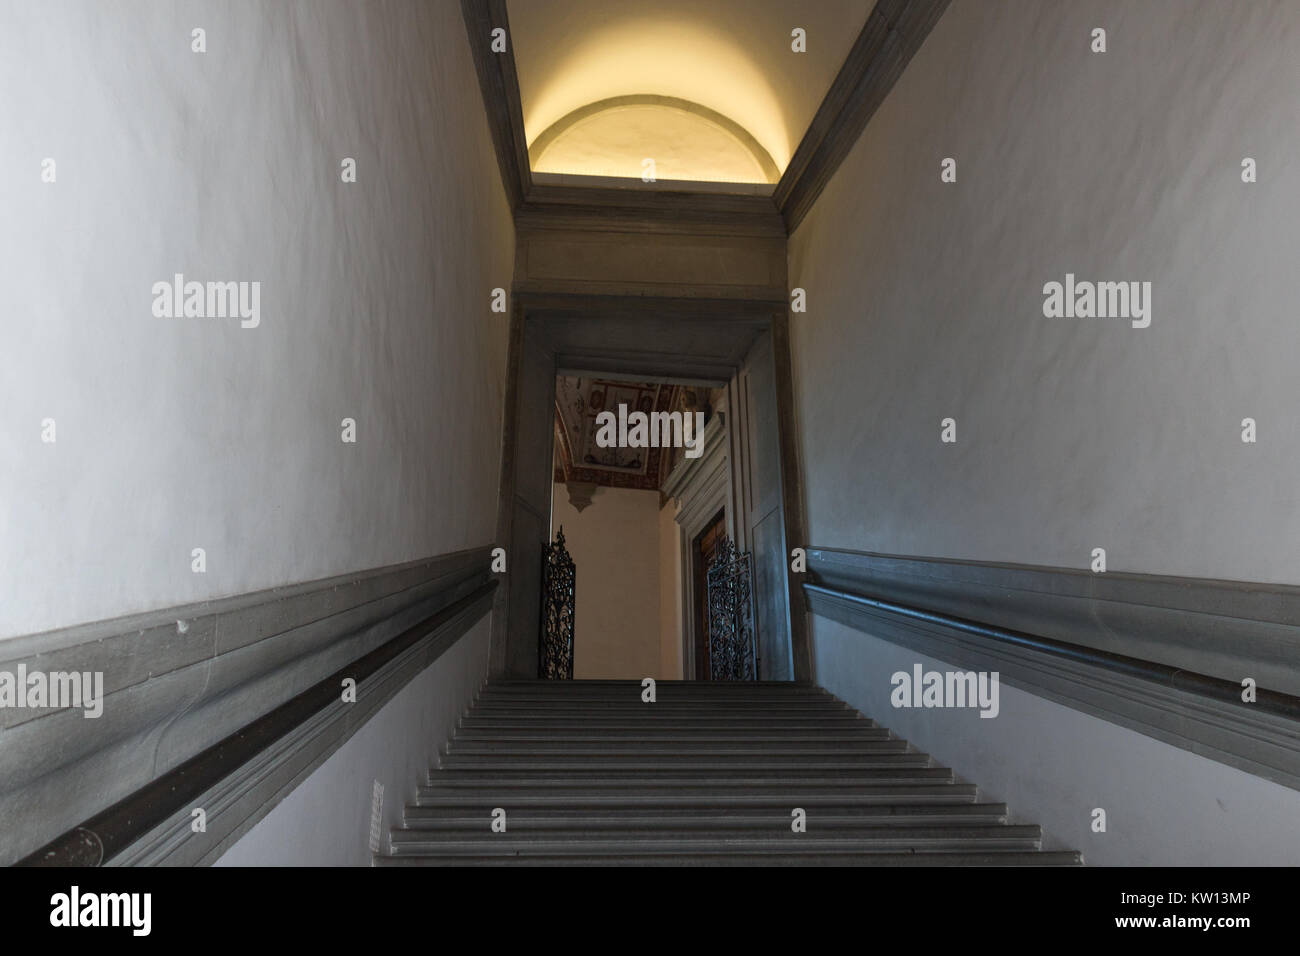 Italy, Florence - May 18 2017: the view of staircase in Palazzo Vecchio on May 18 2017 in Florence, Tuscany, Italy. Stock Photo